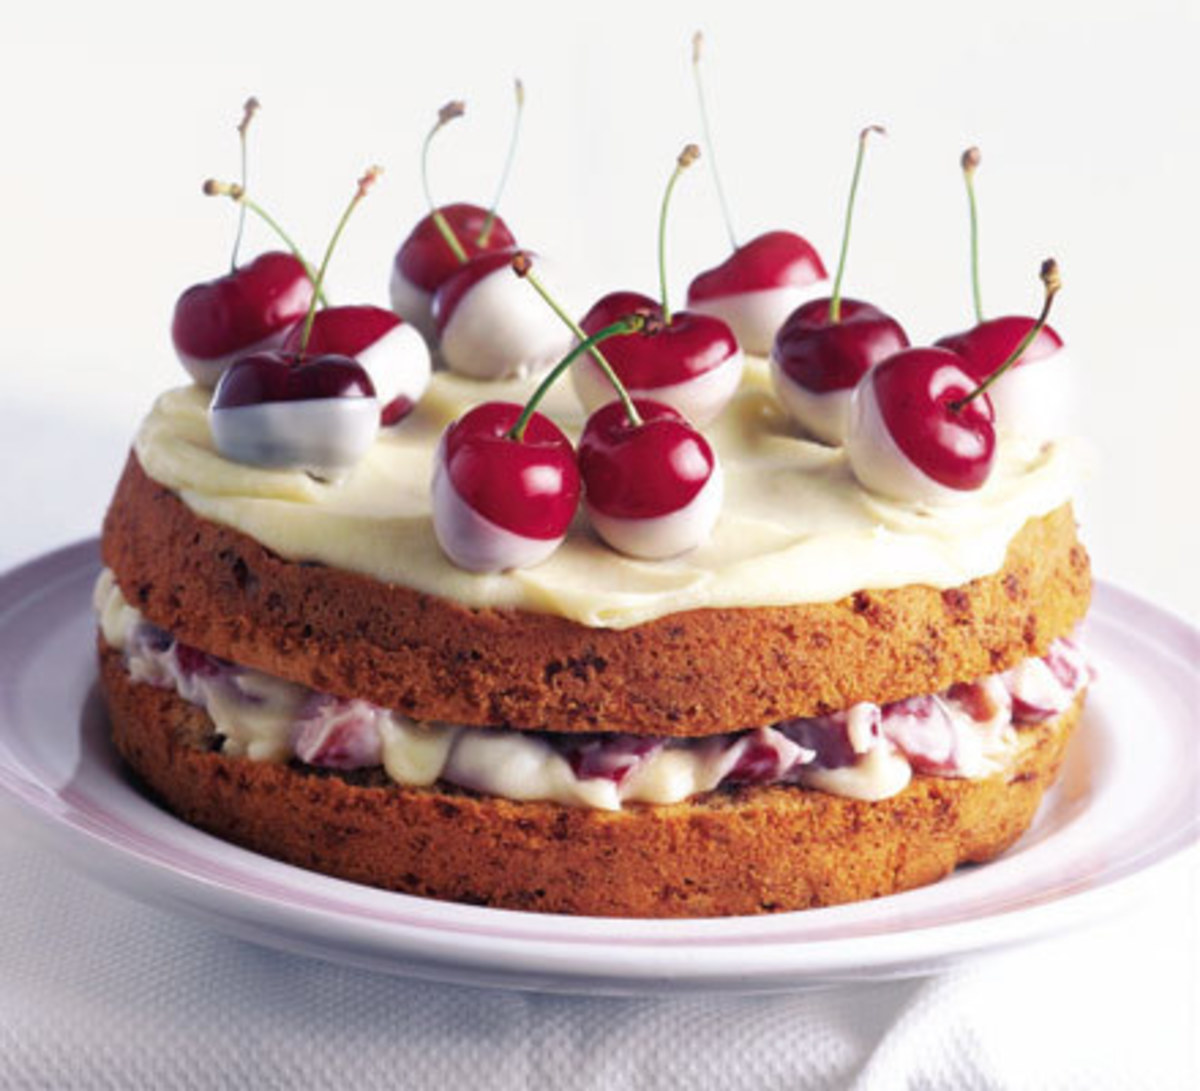 Cherry cake with lots of good aroma for your tongue.